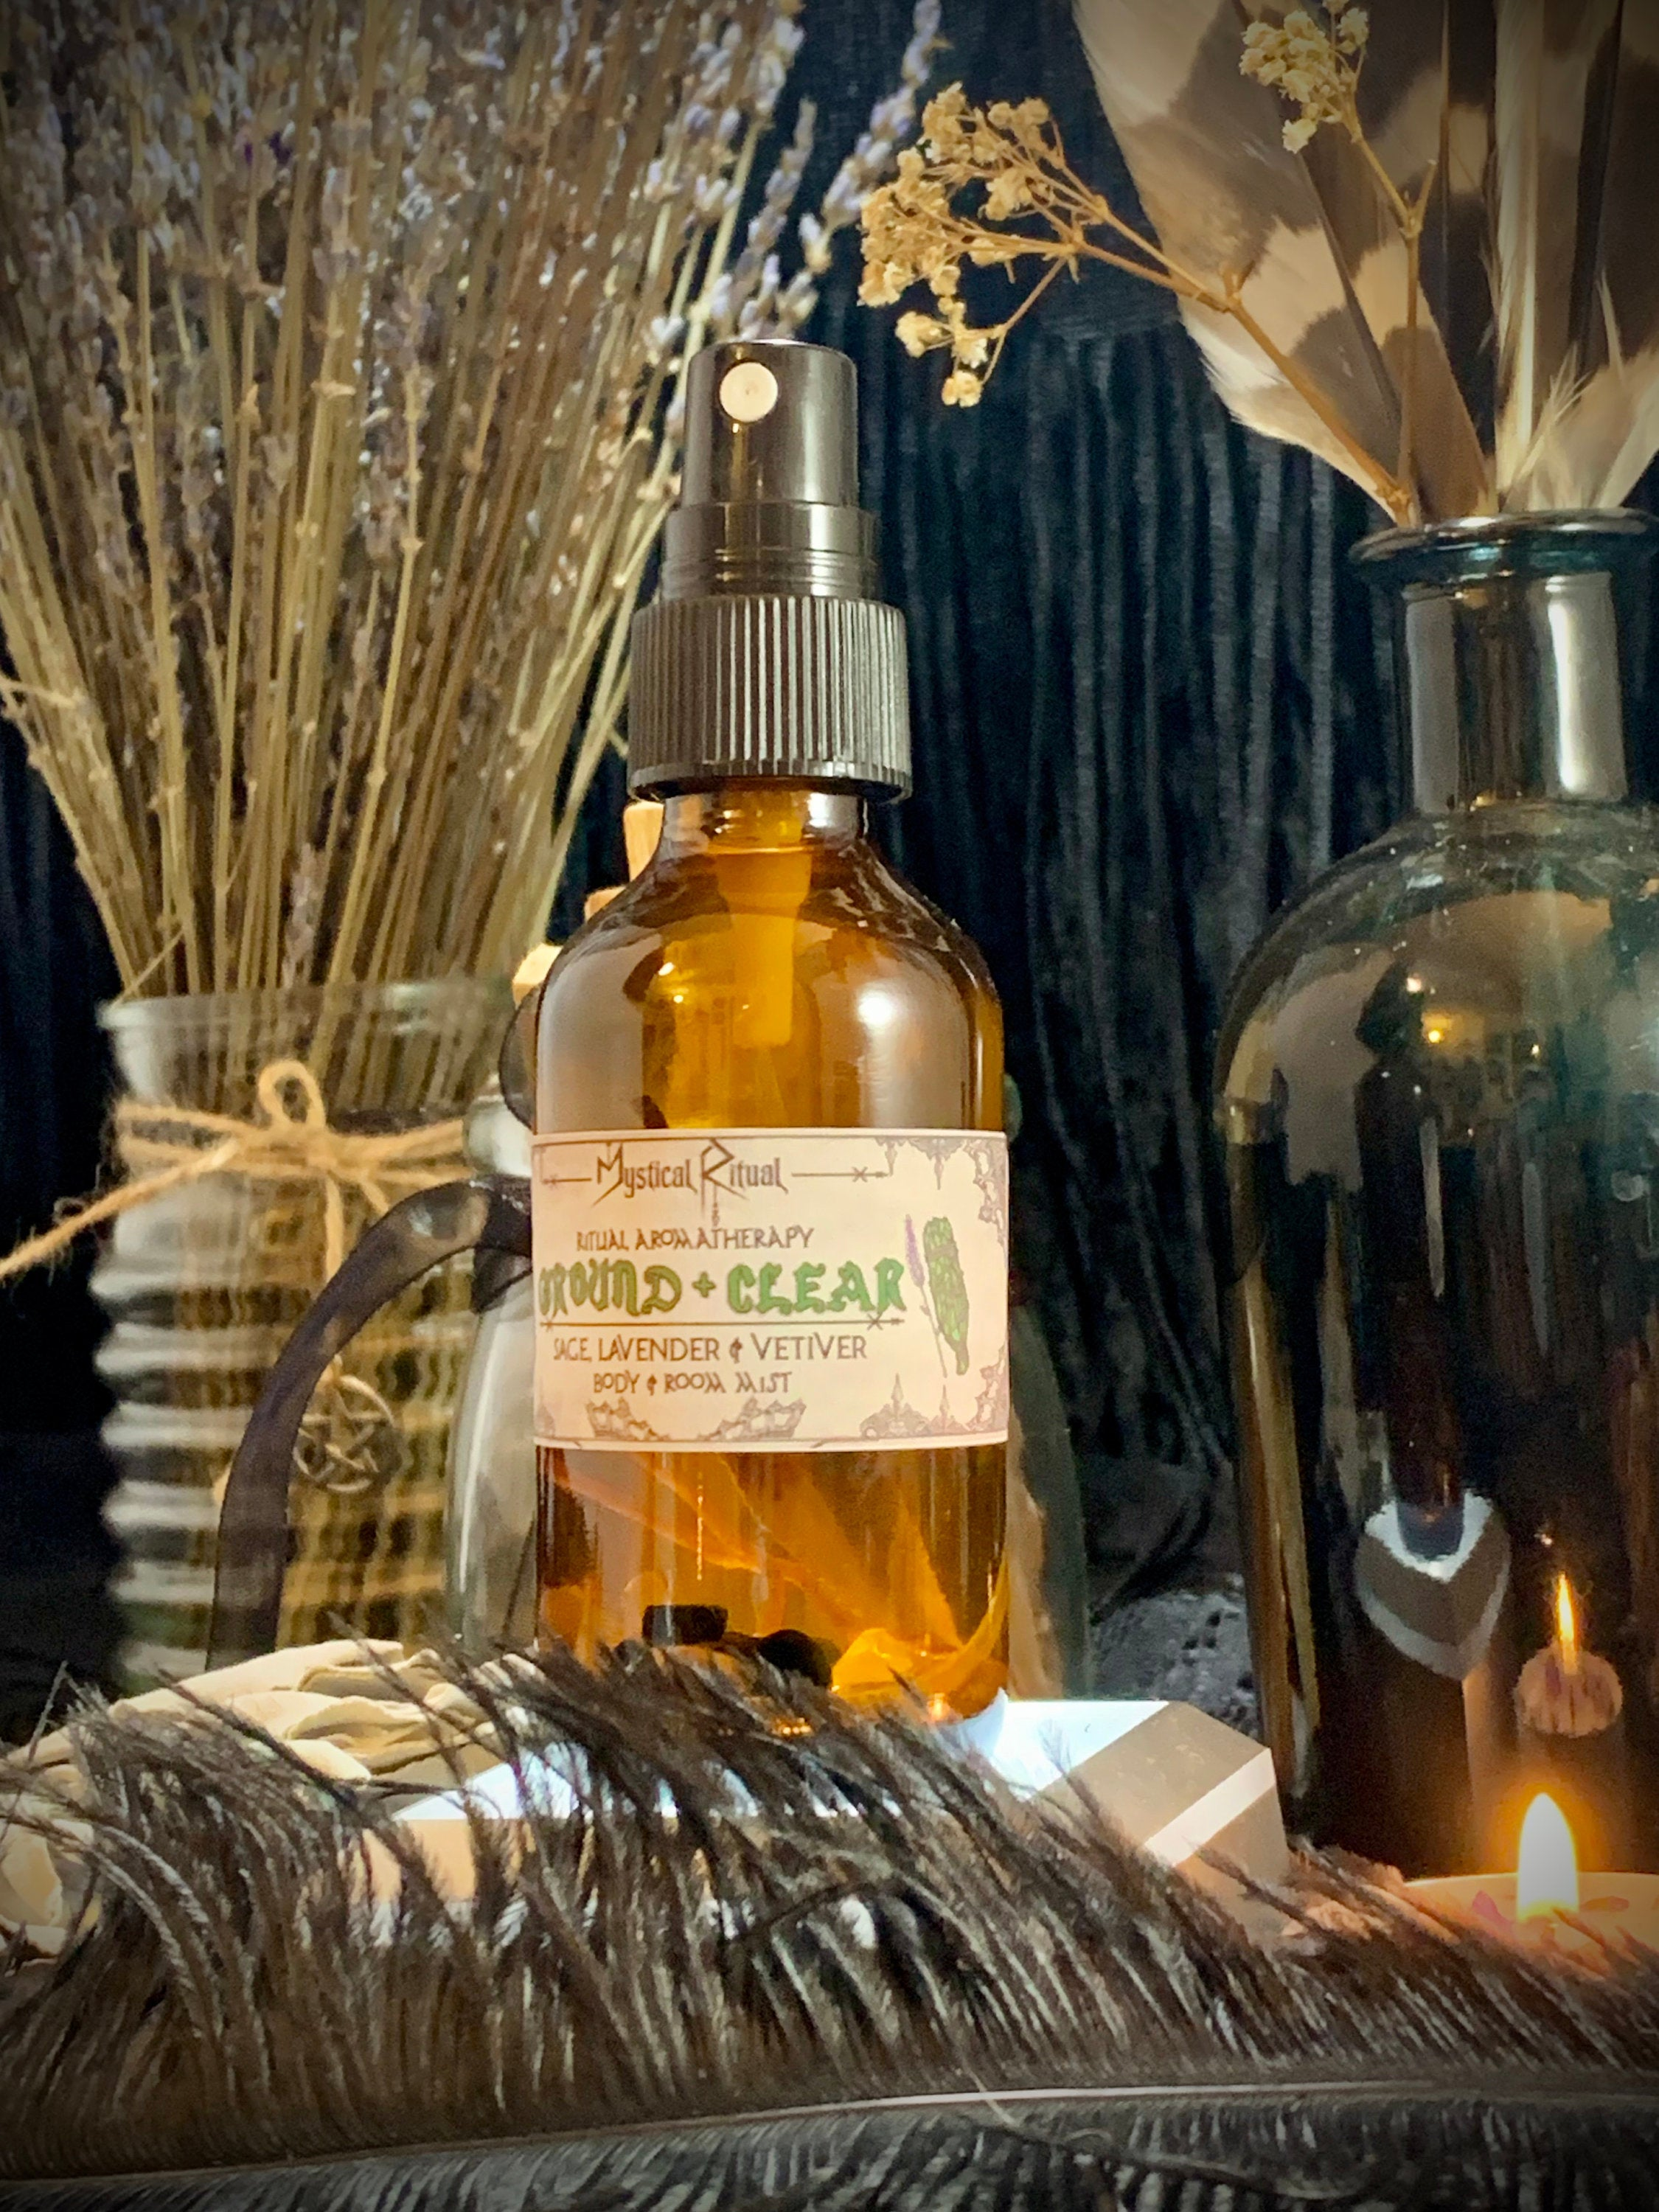 GROUND & CLEAR Aromatherapy Mist